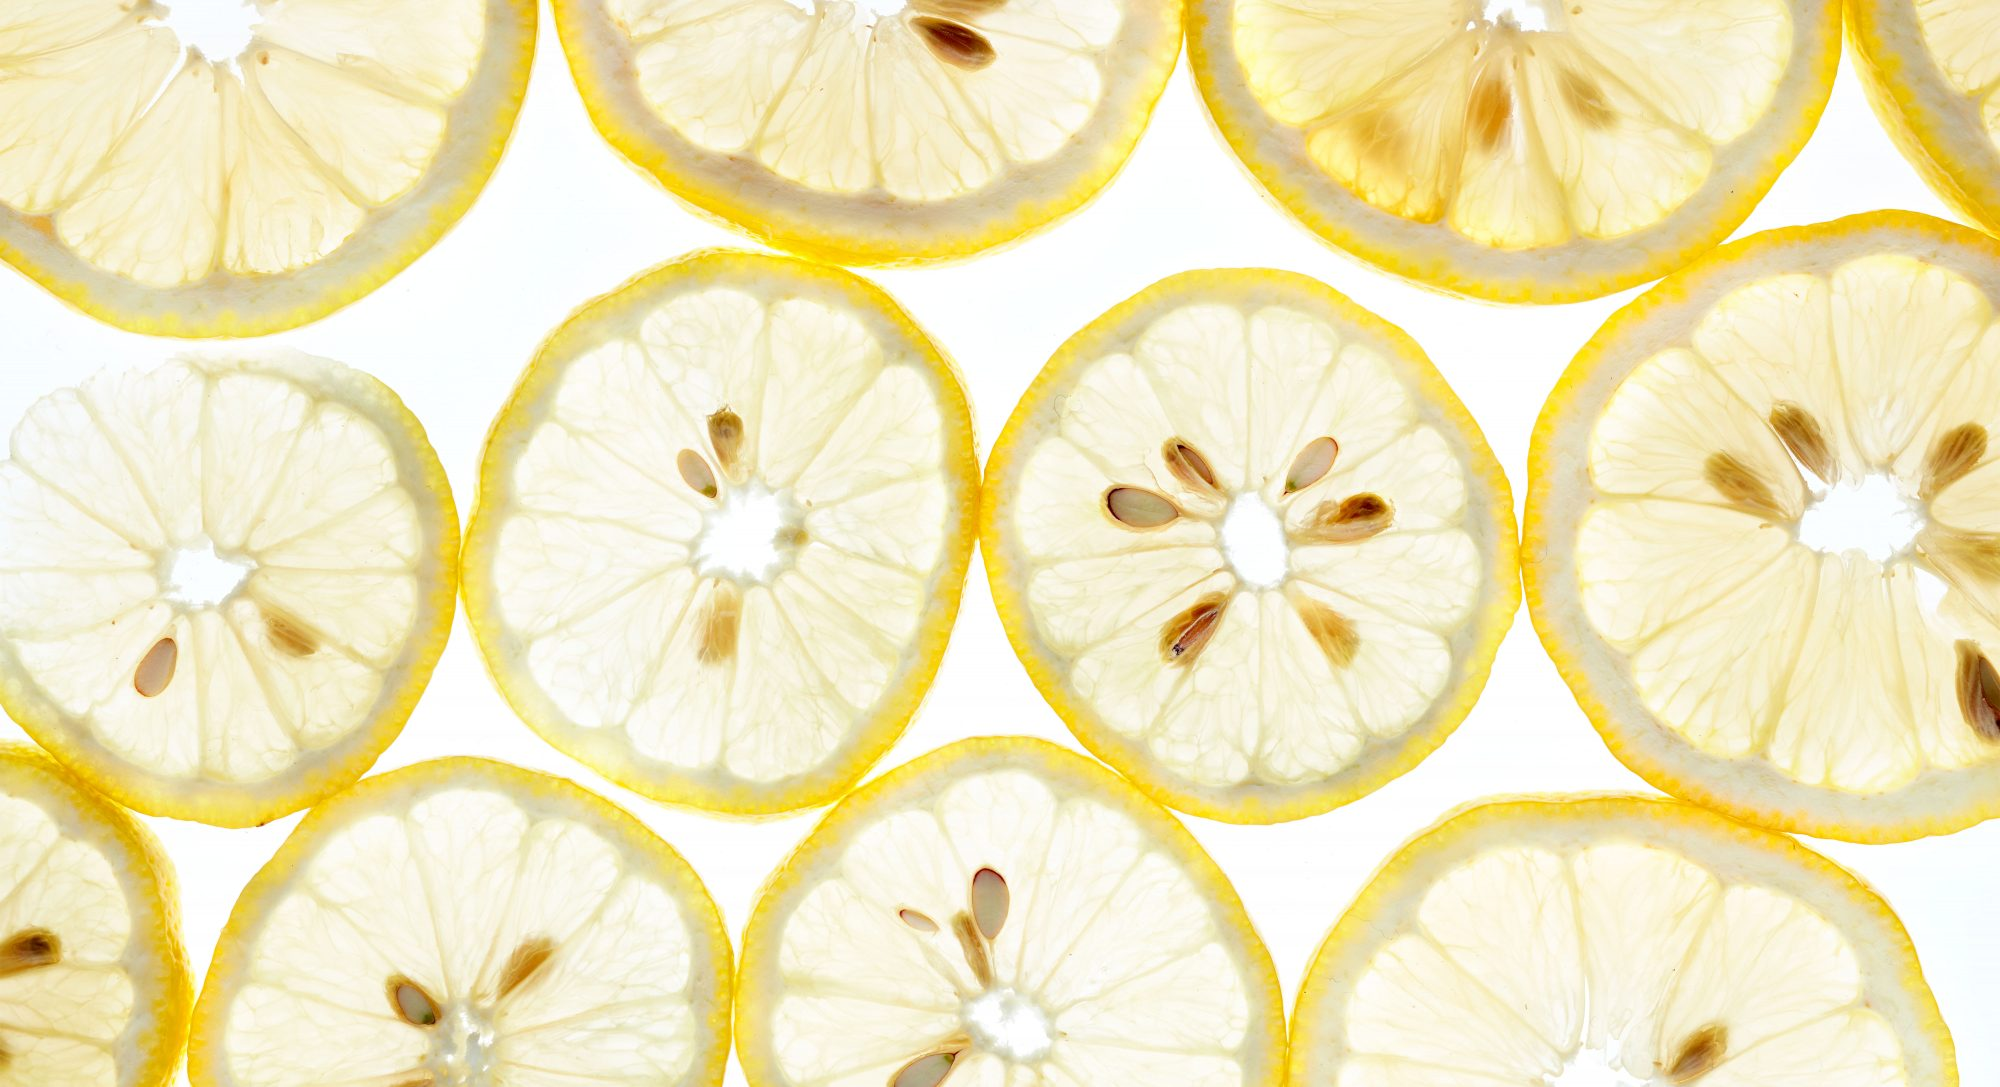 Kitchen Hack: 11 Ingenious Ways to Clean With a Lemon